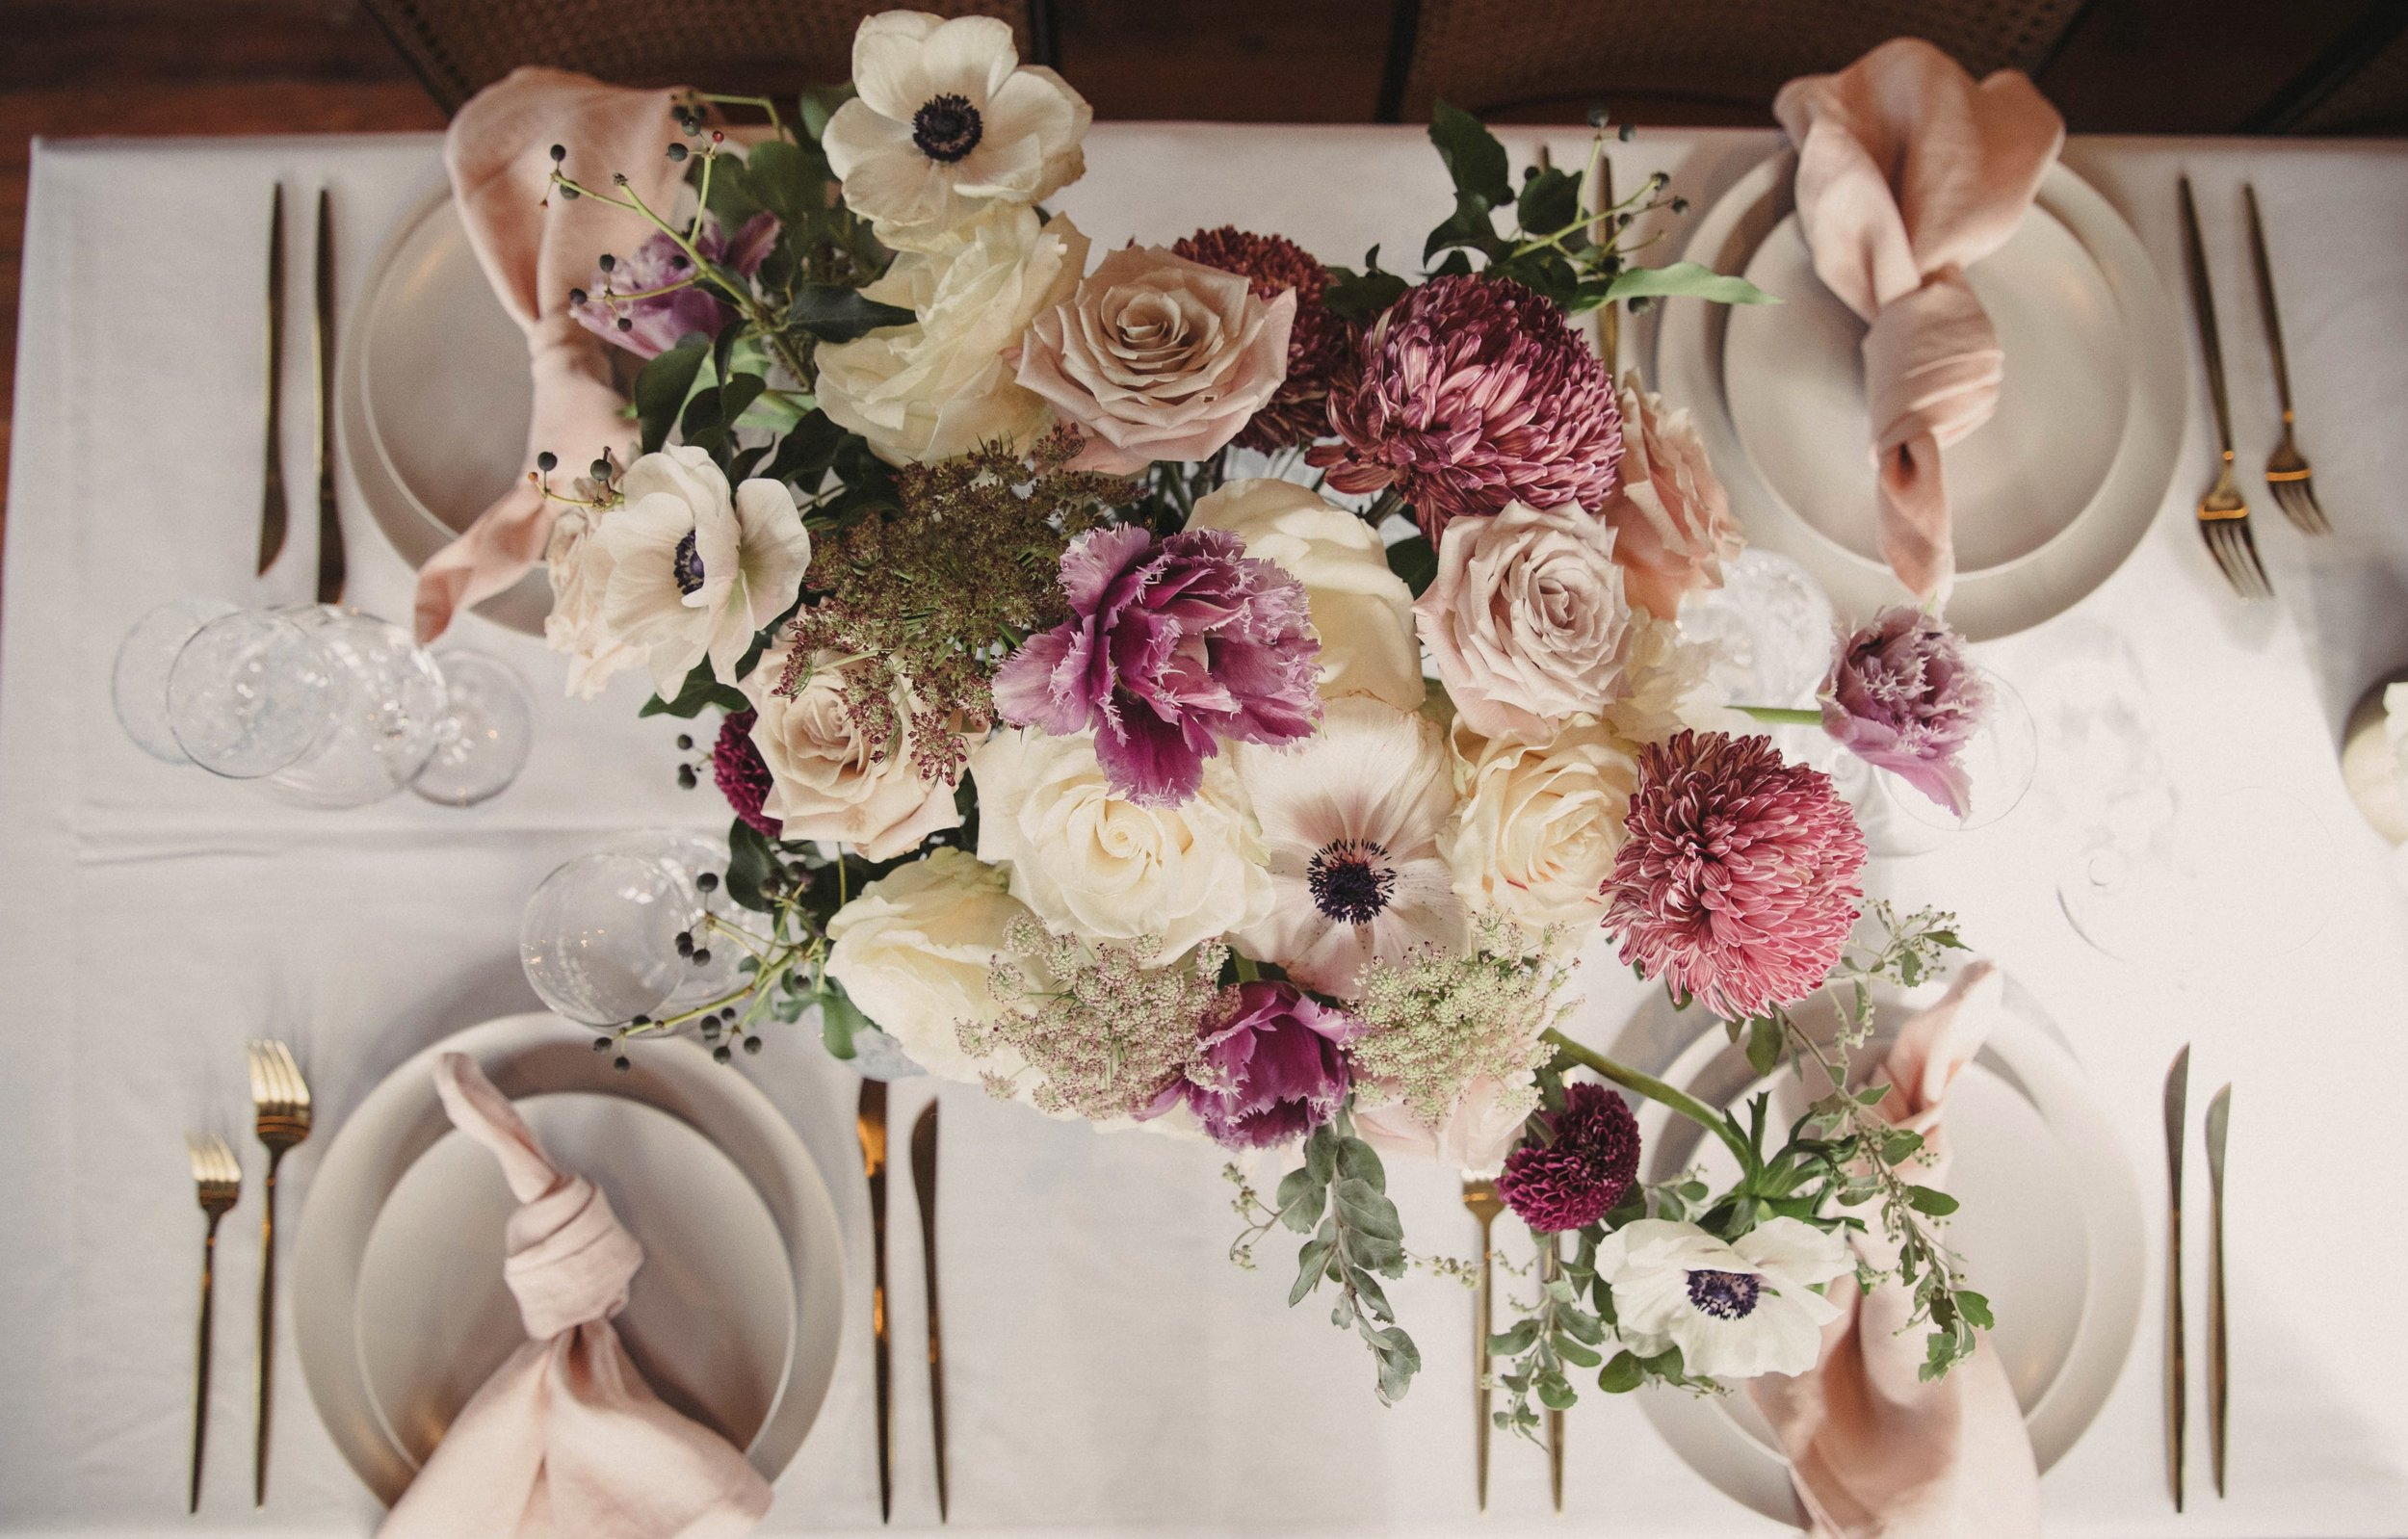 The Curated Life - Winter Flowers Stanton and Co Wedding.jpg